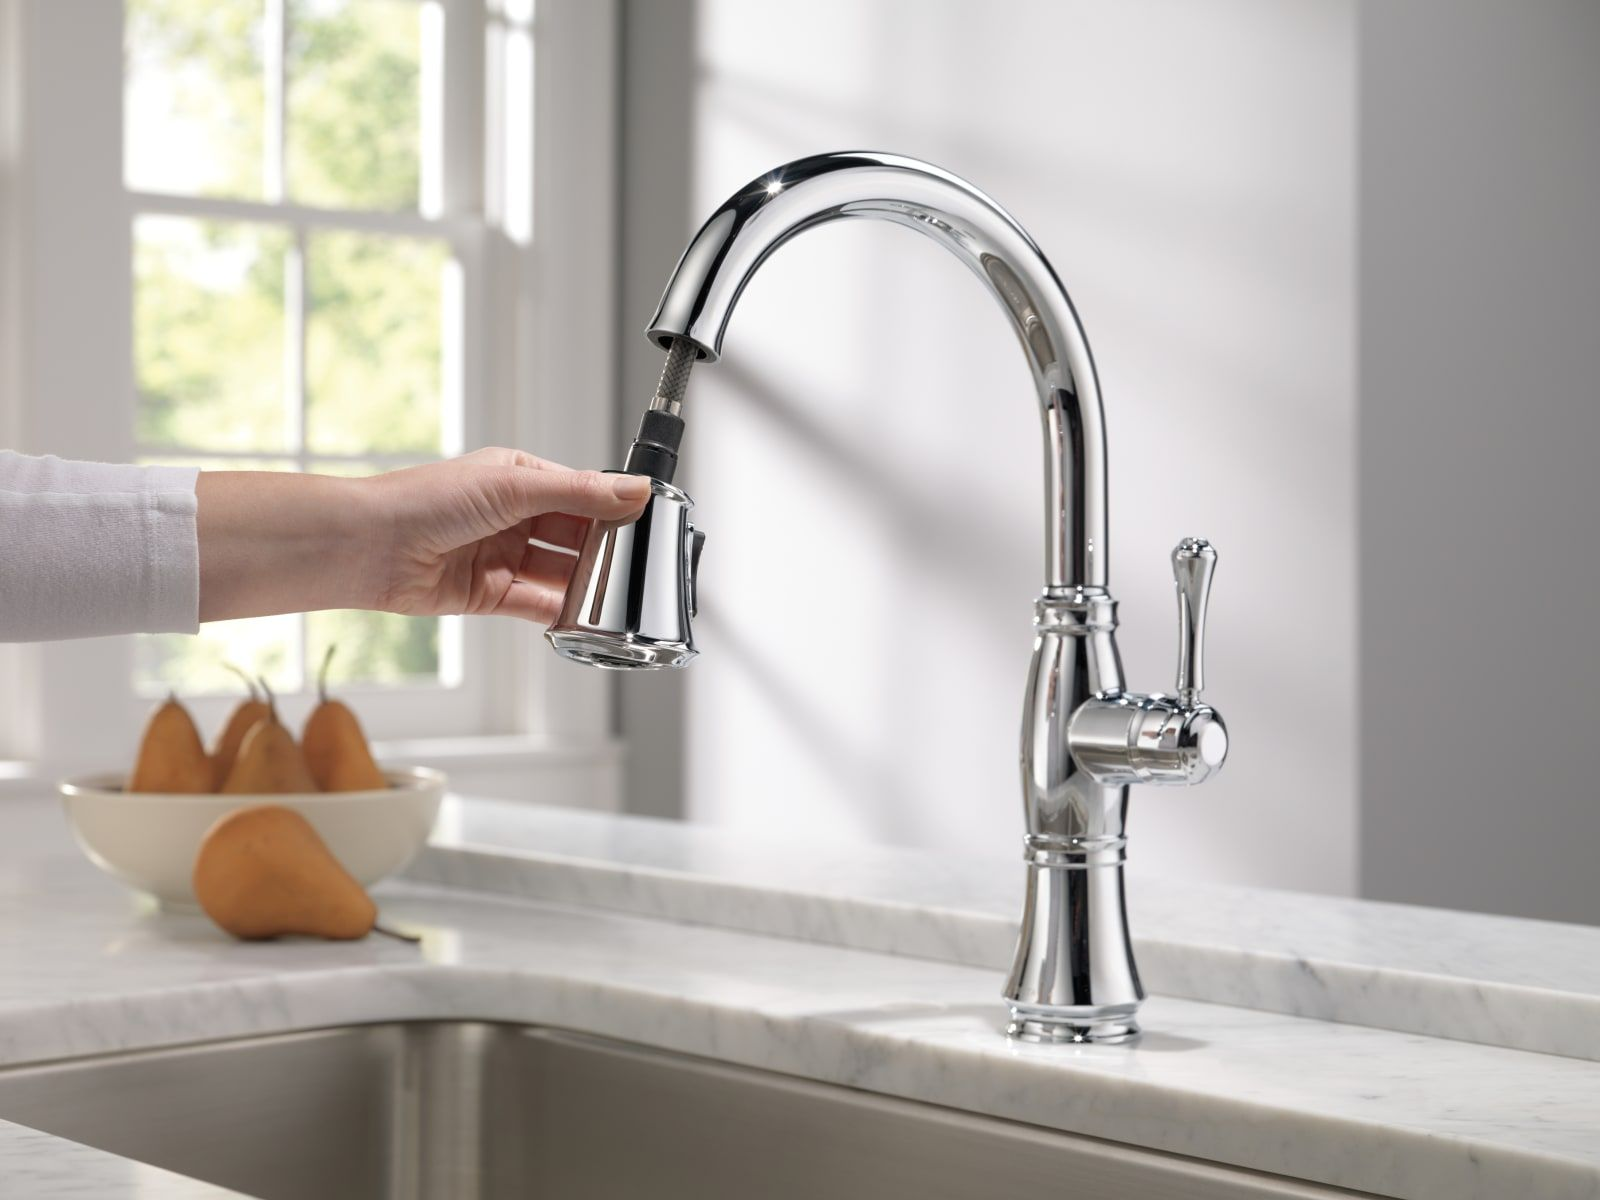 Delta 9197 Ar Dst Cassidy Pull Down Kitchen Build Com In 2021 Kitchen Faucet Kitchen Style Brushed Nickel Kitchen Faucet Delta brushed nickel kitchen faucet